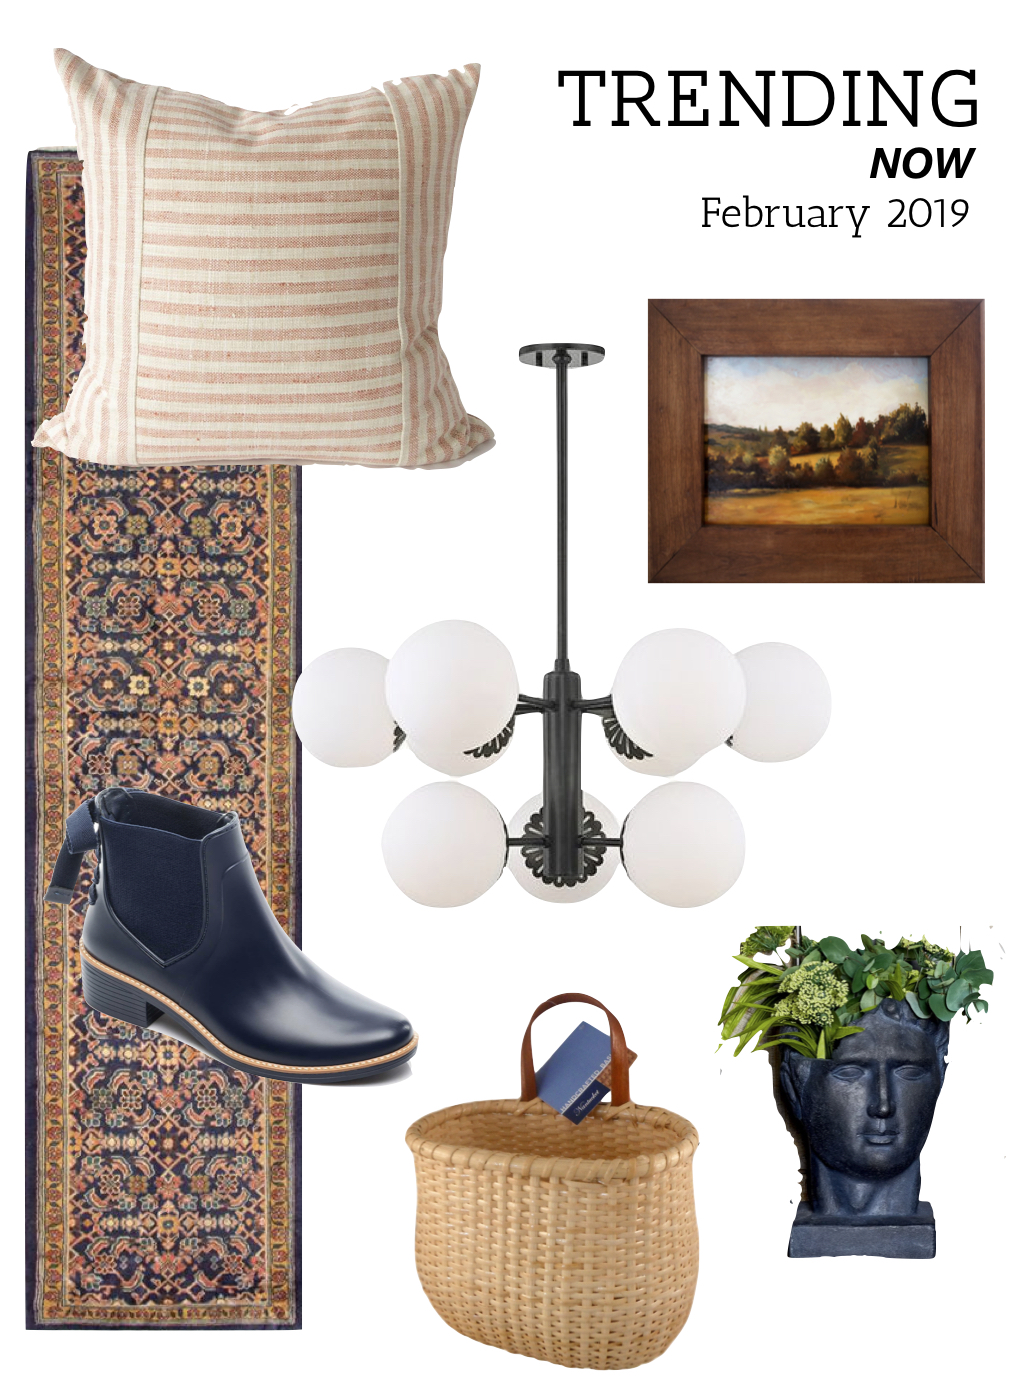 Home design trends for spring 2019. Vintage rugs, coral pillows, landscape paintings, globe chandeliers, wall baskets